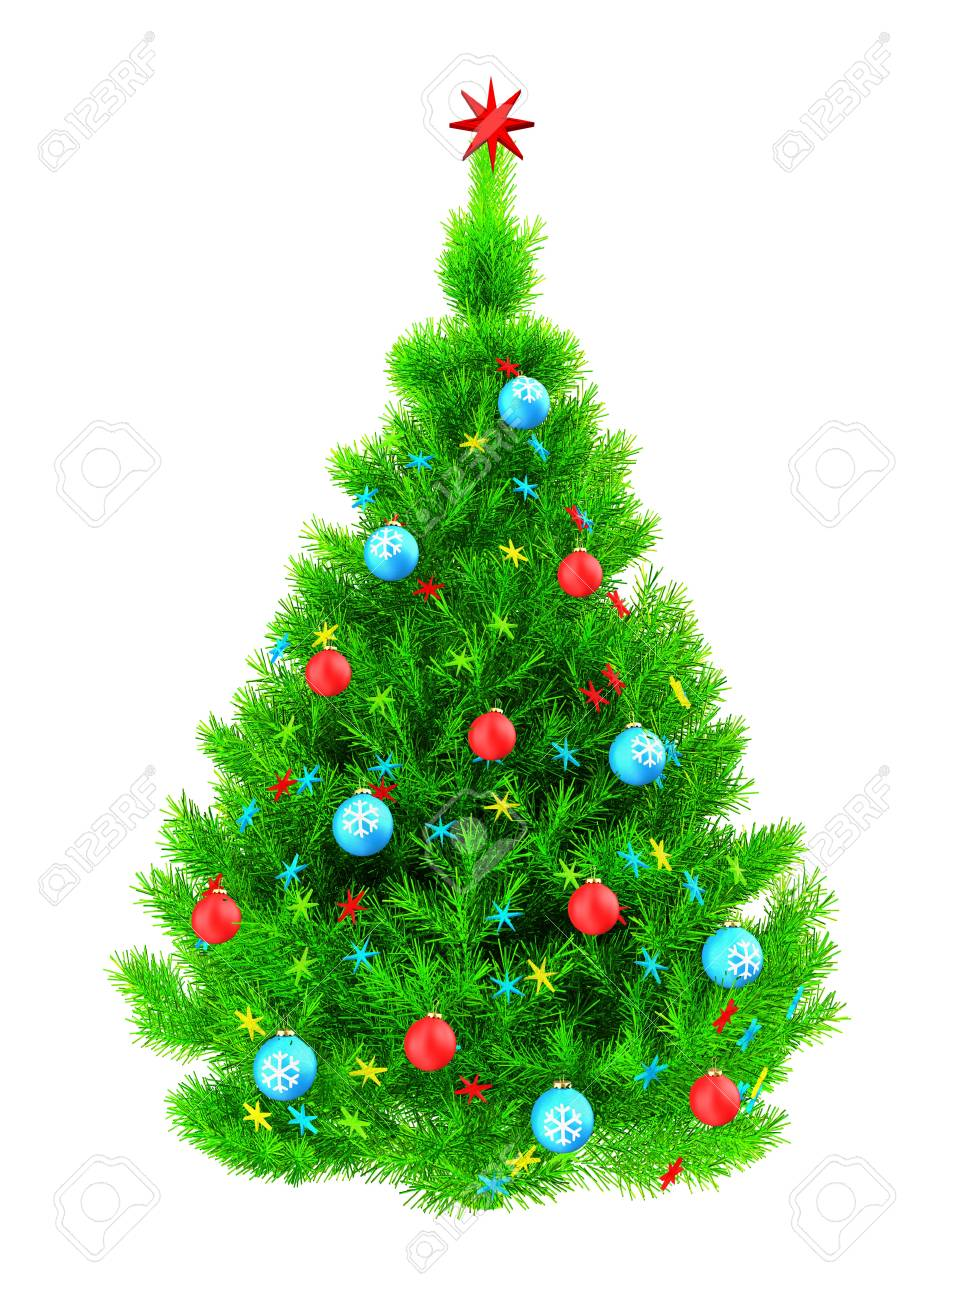 3d Illustration Of Neon Green Christmas Tree With Colorful Stars ...